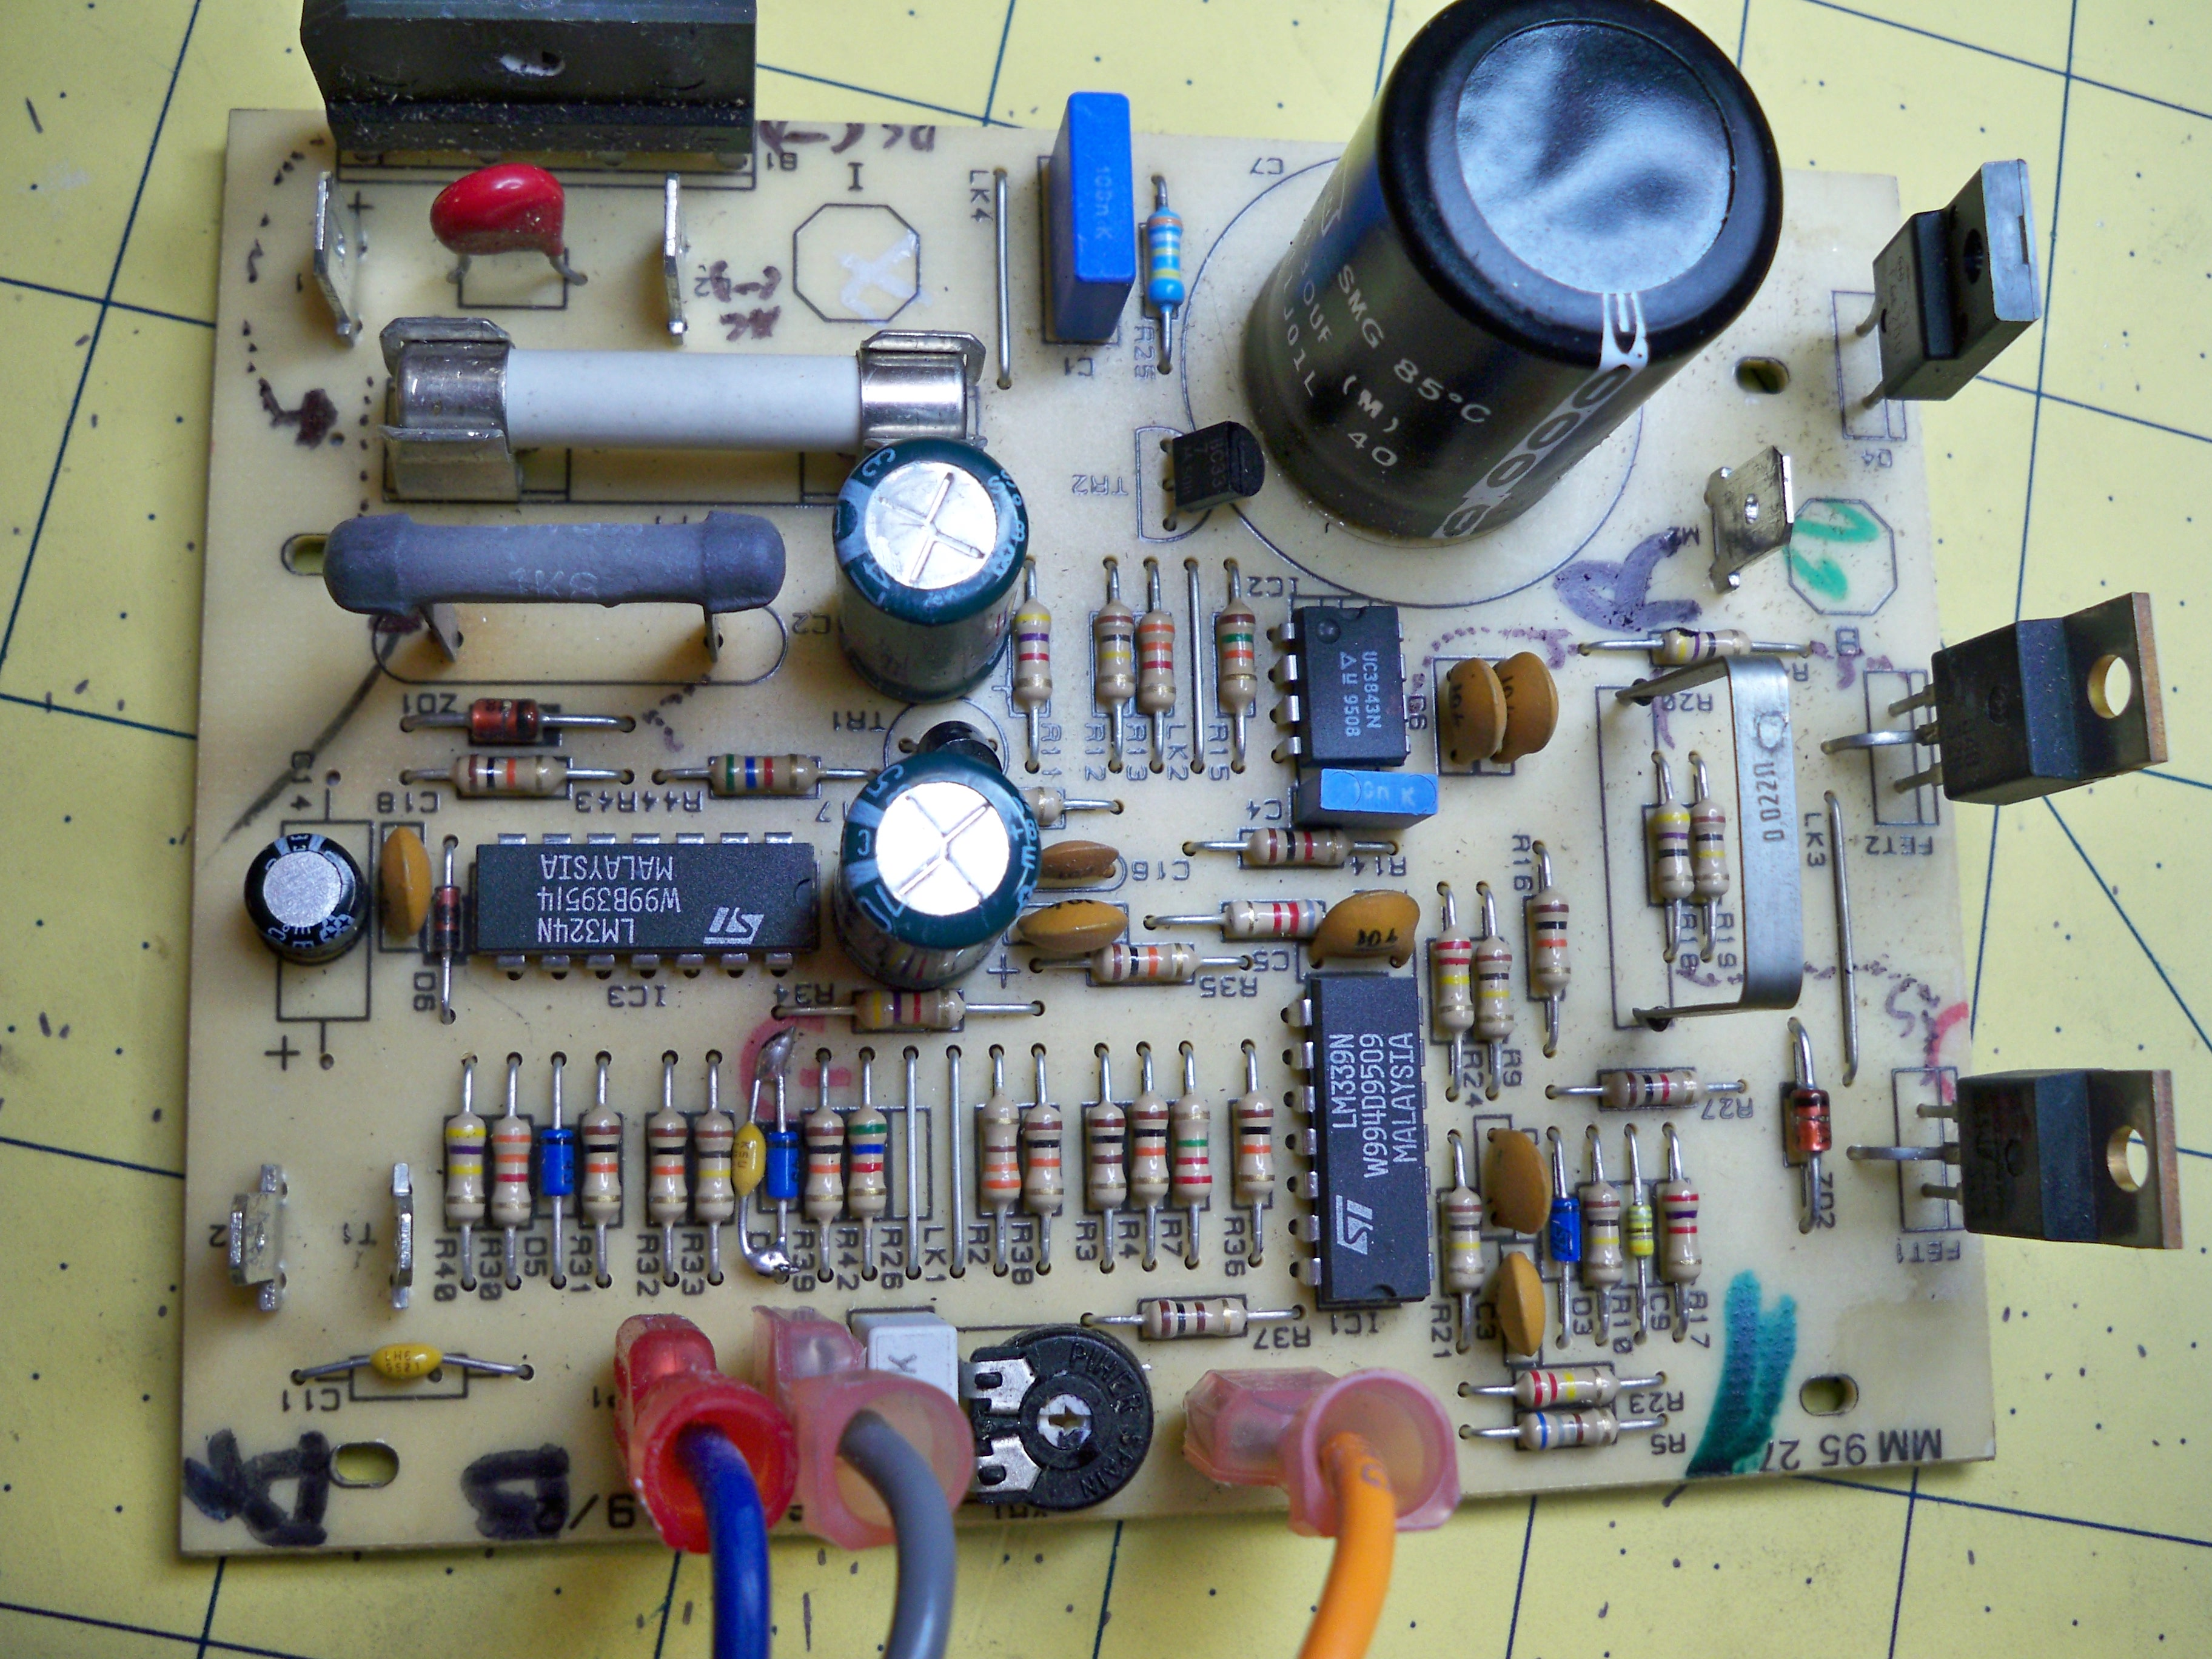 ToddFun.com » Blog Archive » Power Supply Repair: (PART 2)